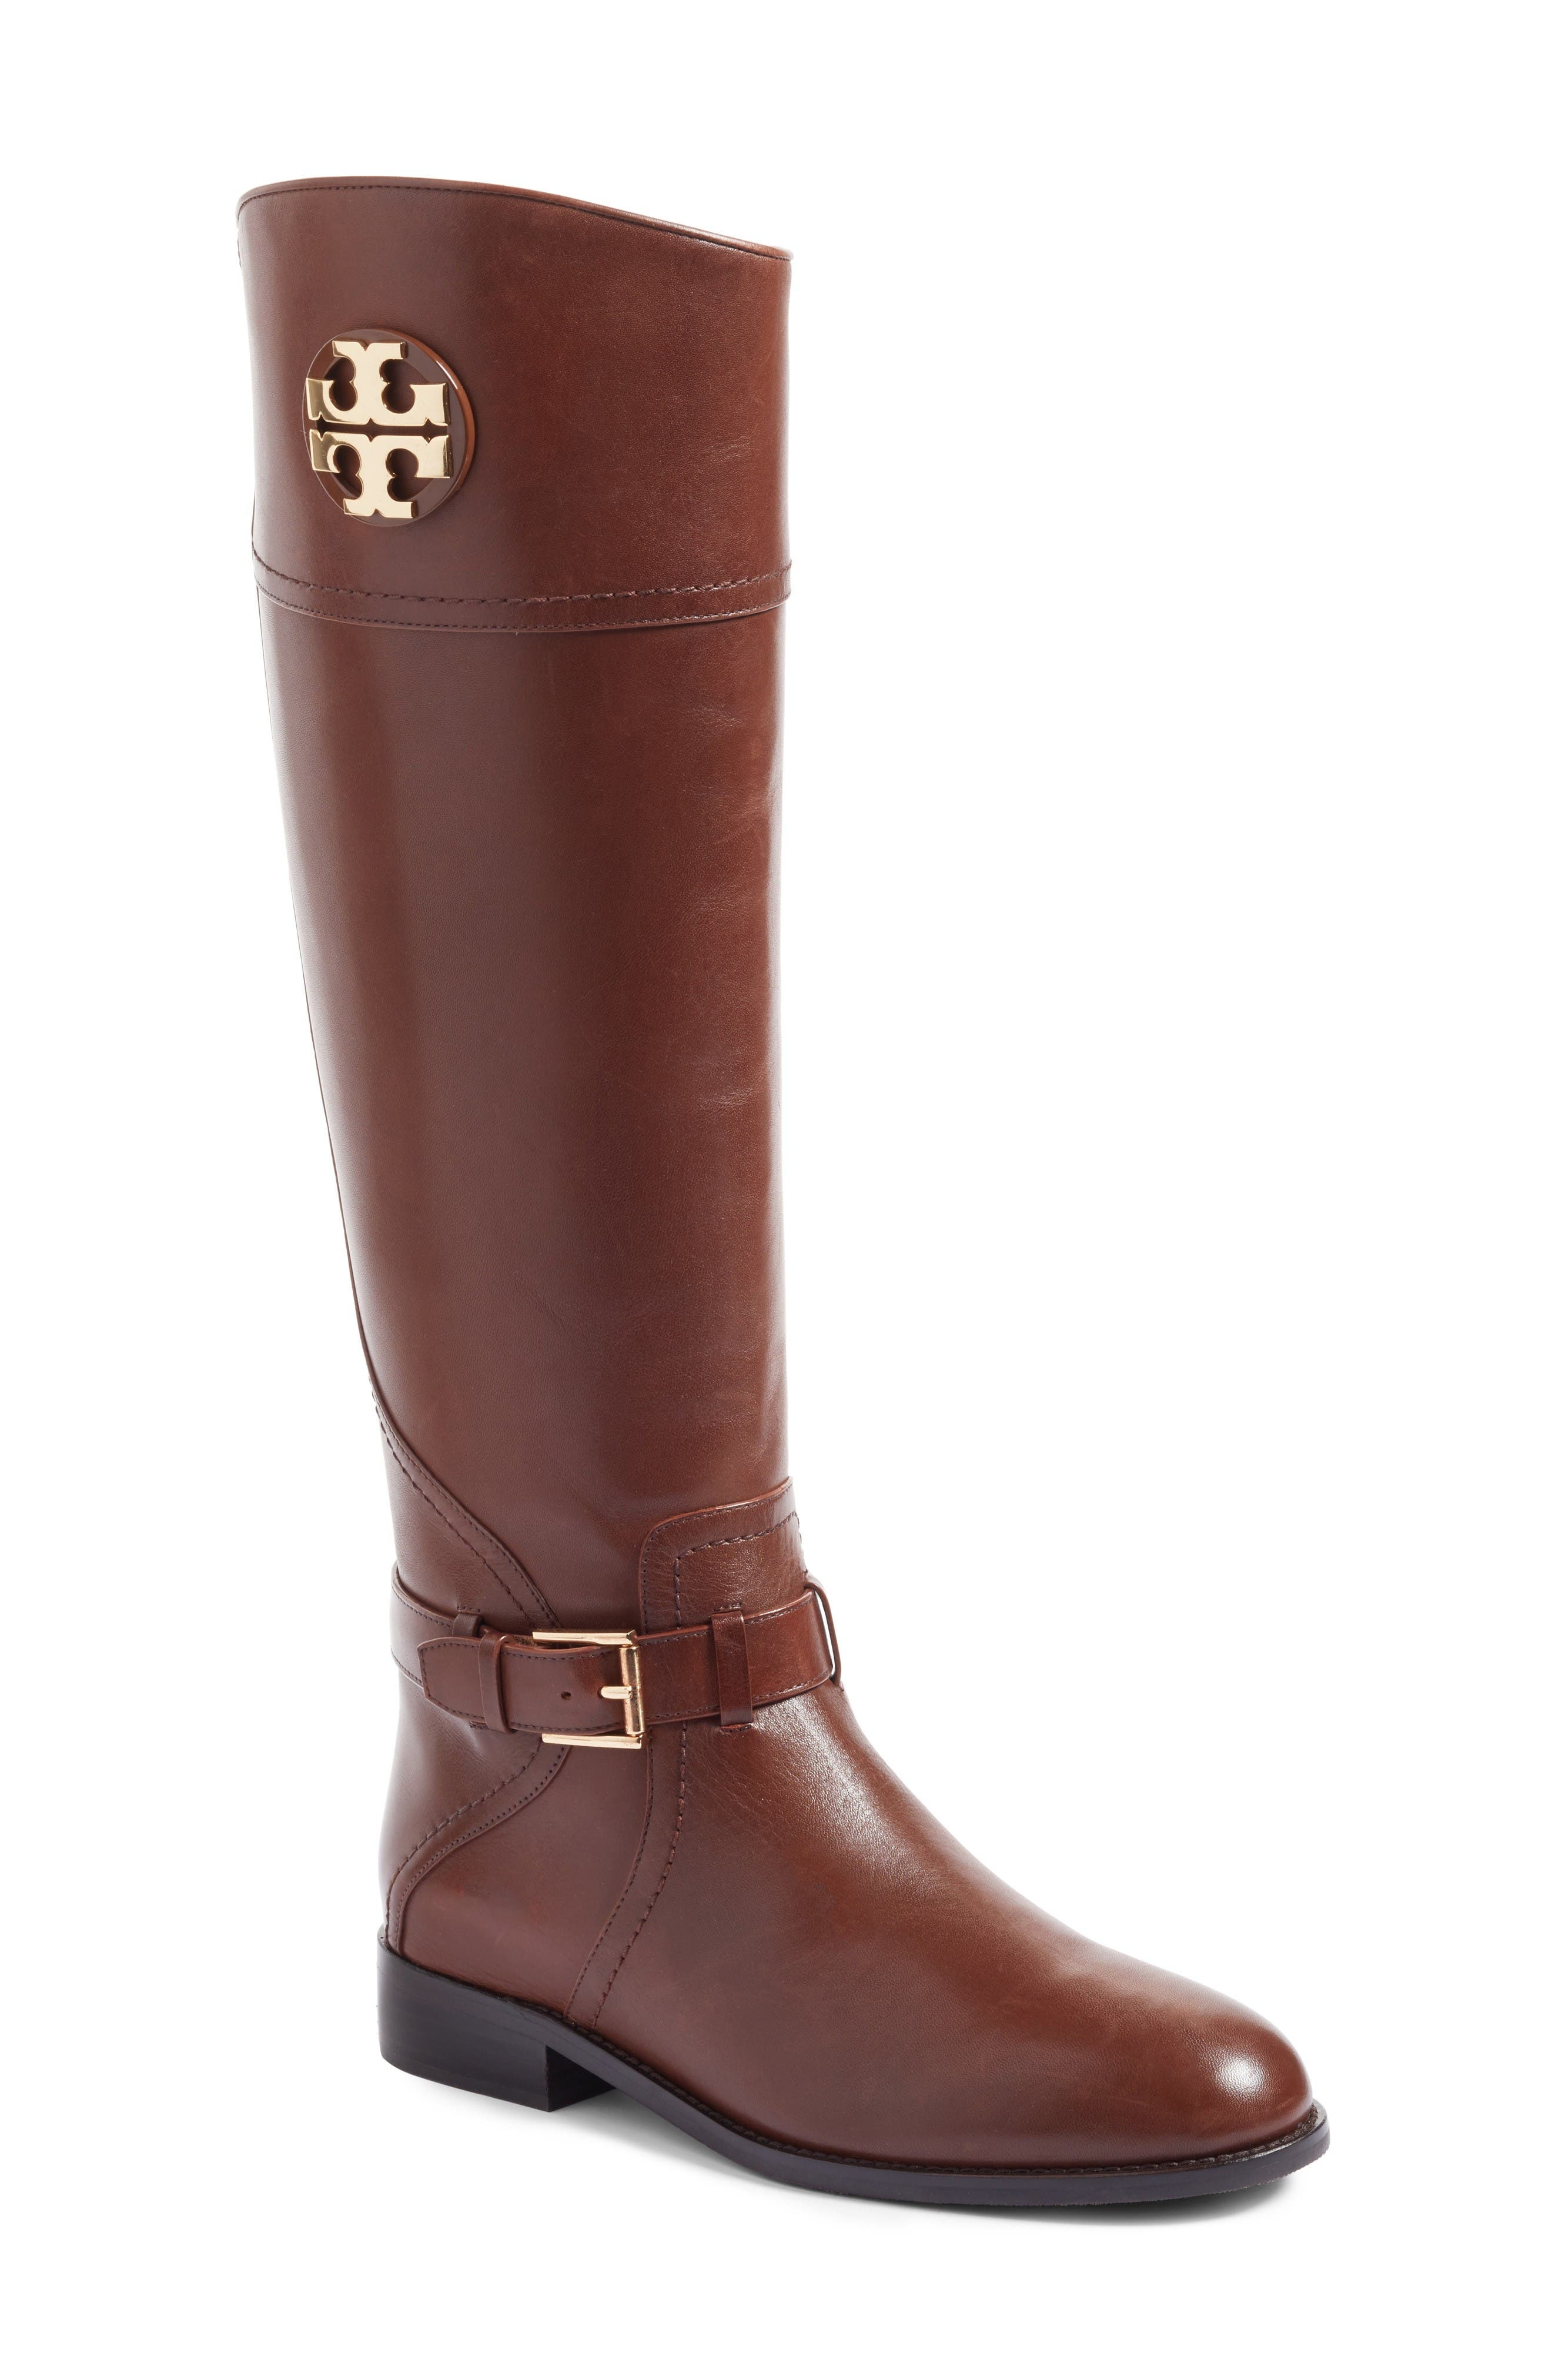 Alternate Image 1 Selected - Tory Burch Adeline Boot (Women) (Regular & Wide Calf)